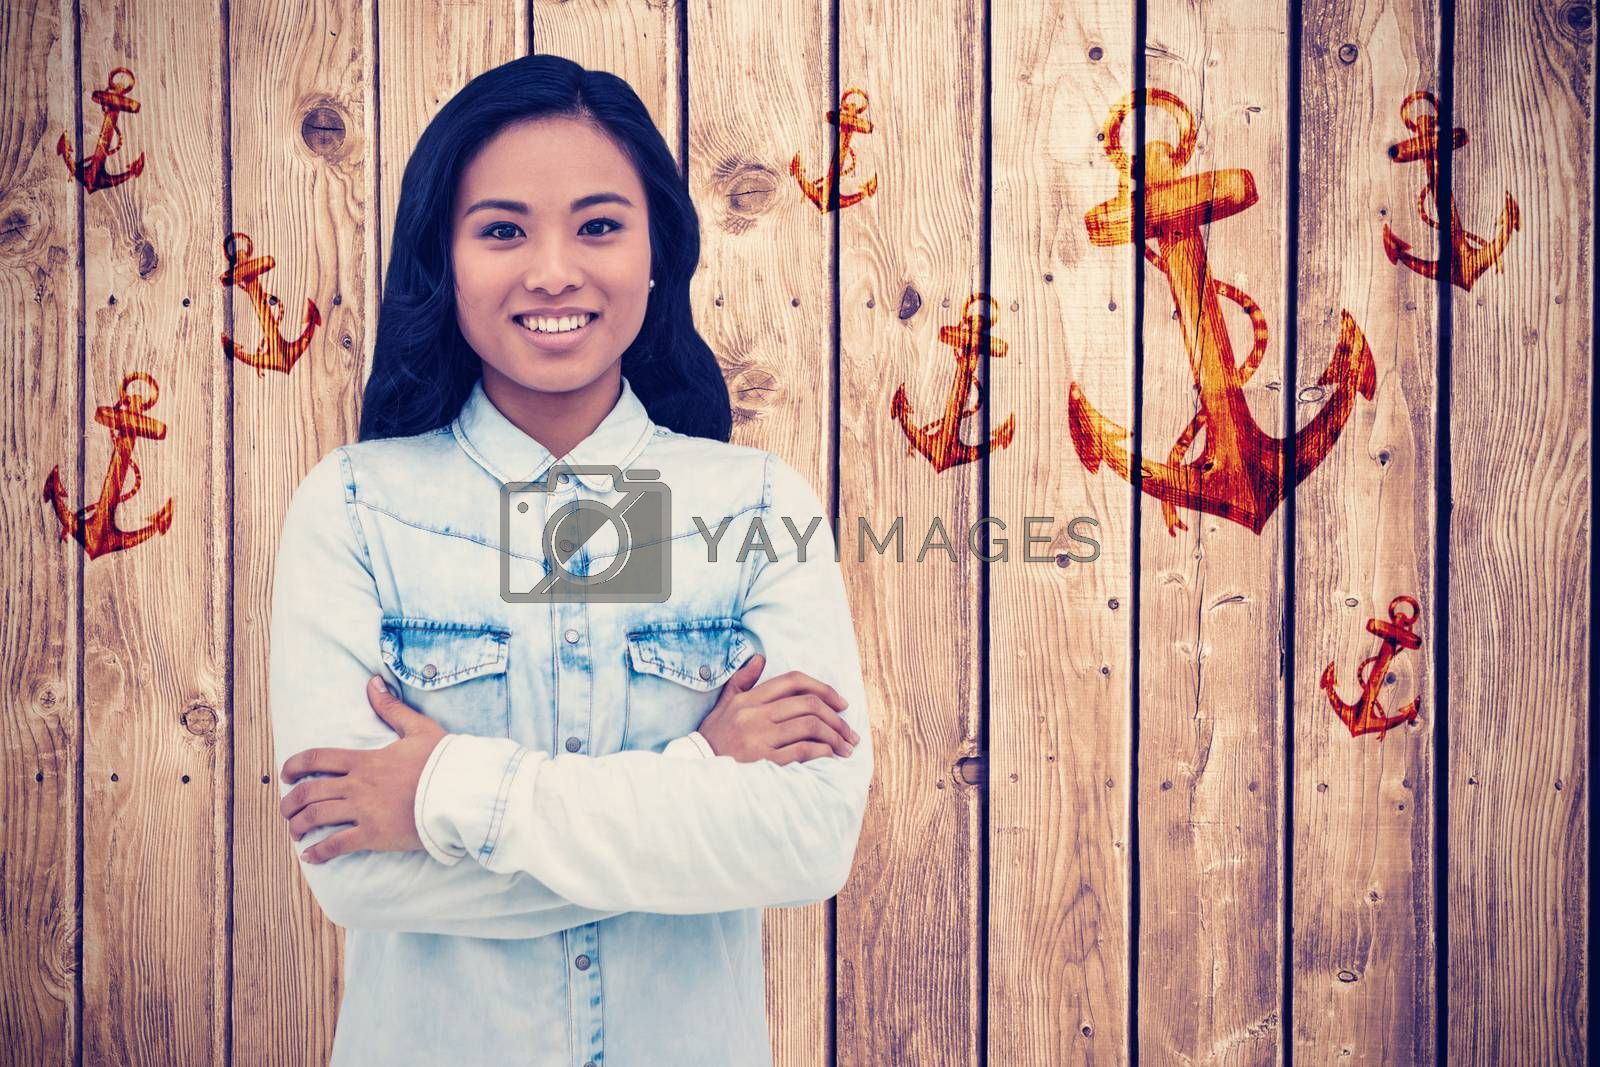 Asian woman with arms crossed smiling against white background with vignette